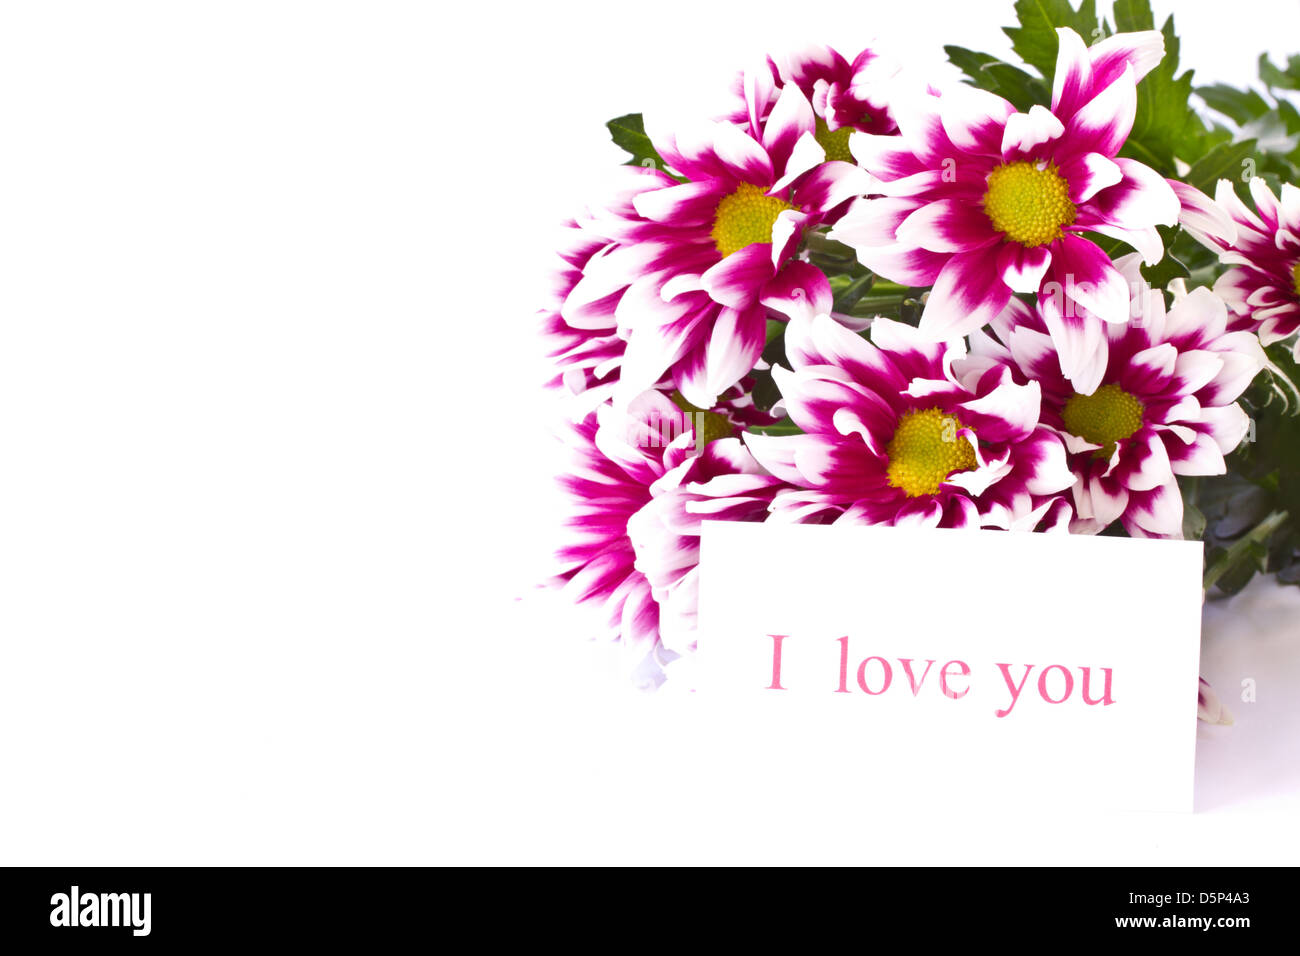 Beautiful Multi Colored Flowers On A White Background Stock Photo